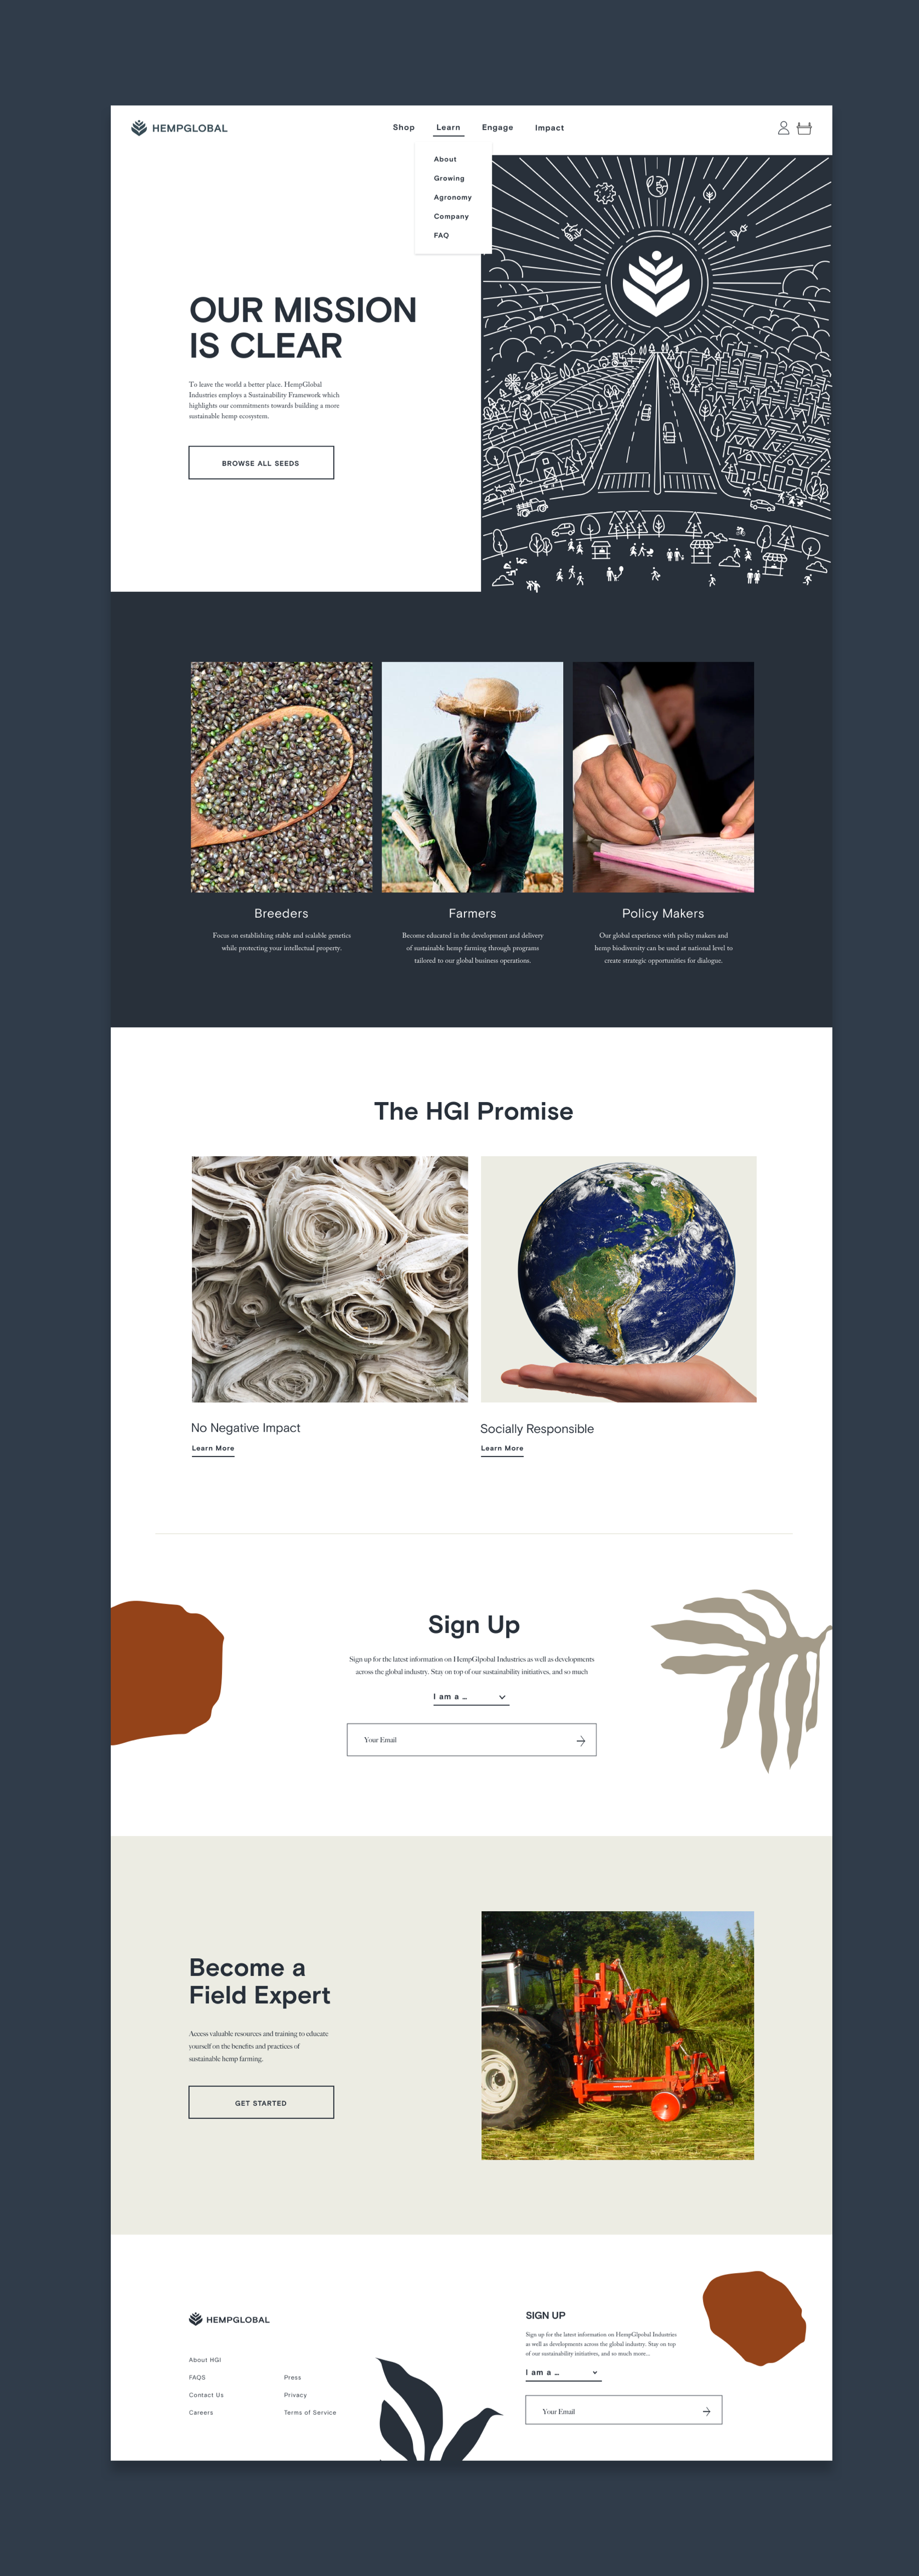 Our mission is clear. Comp of the HGI homepage showing illustration at top and sections for breeders, farmers, and policy makers.